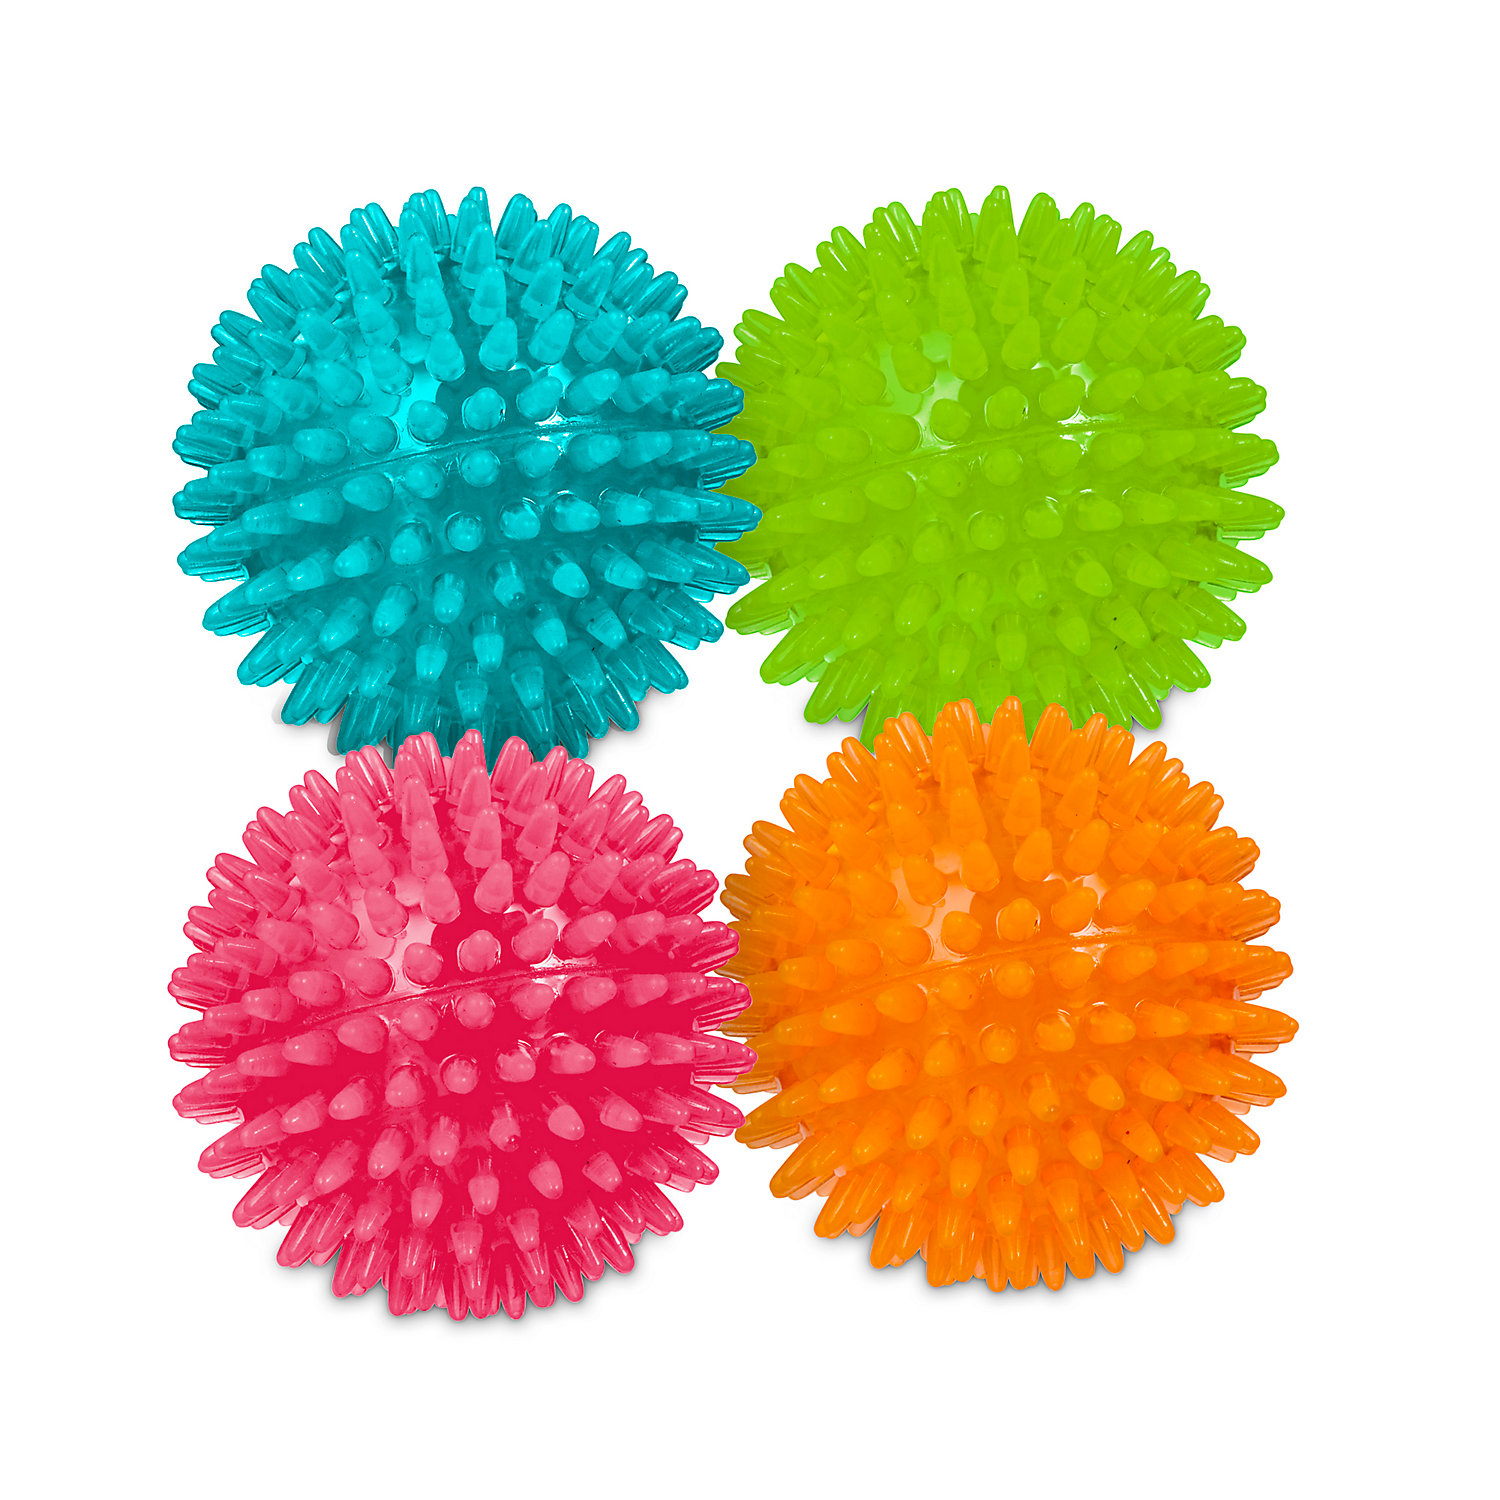 Squeaky Dog Toy Round Ball Animal